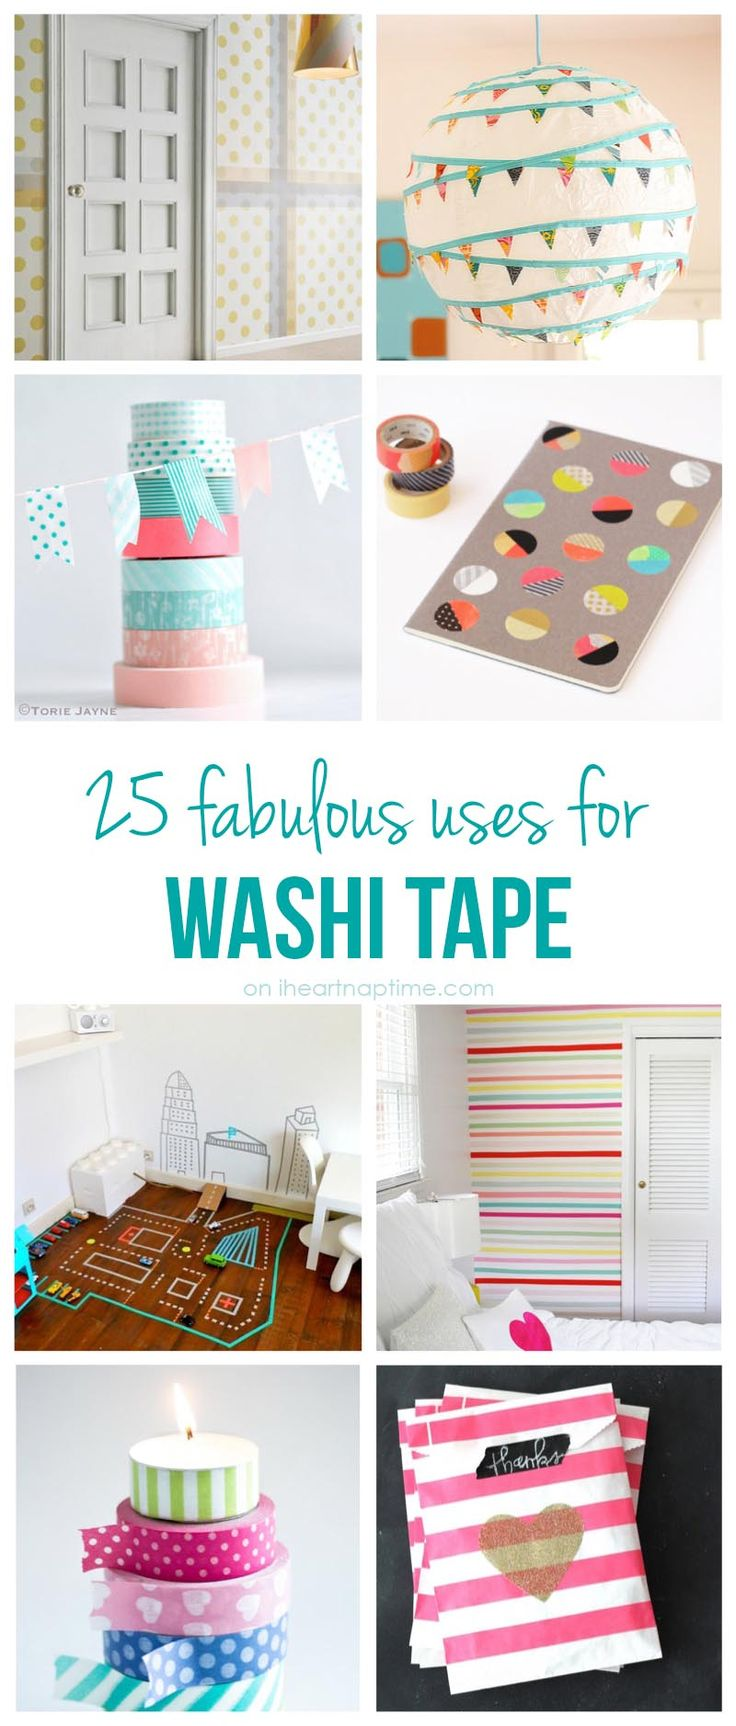 25 fabulous uses for washi tape on